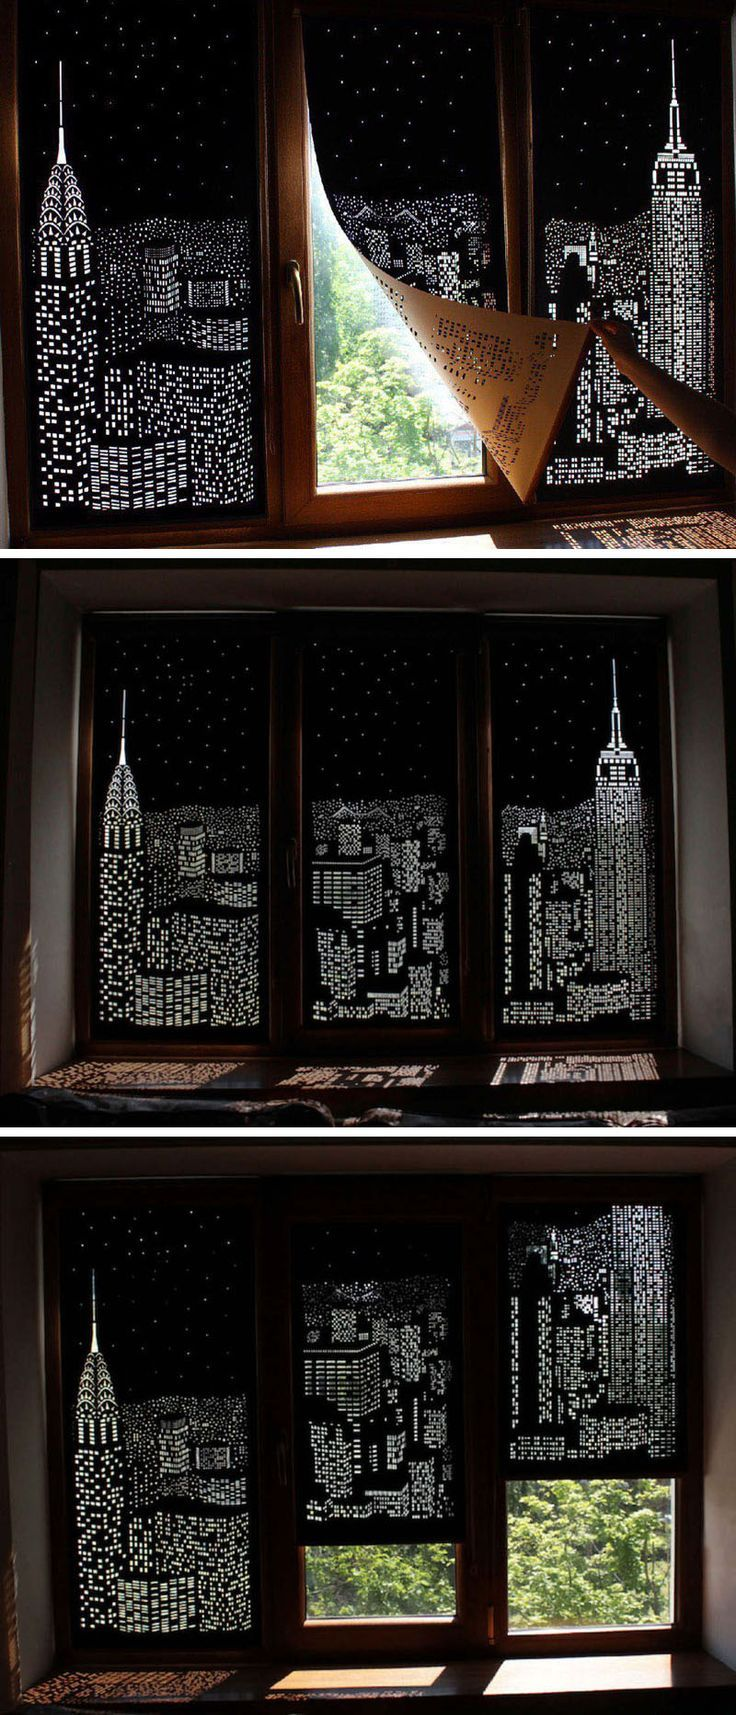 These Blackout Blinds Provide A City View When Closed – worldefashion.com/decor